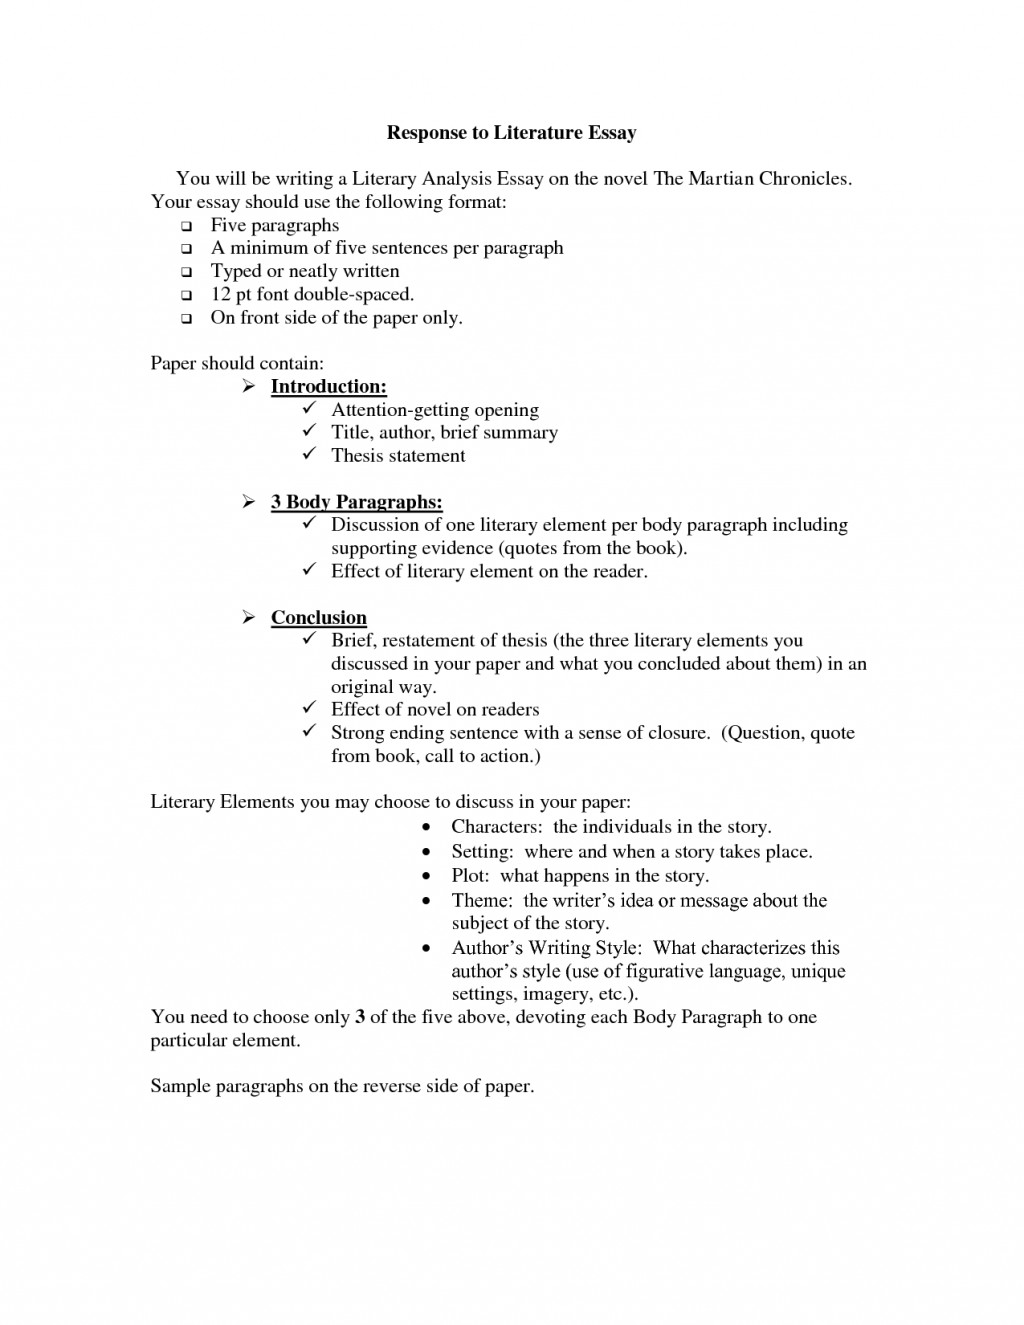 027 Write Critical Analysis Essay Response Literature Character Sketch Macbeth Introduction College Poetry Example Rhetorical Process Examples Analytical Research Paper Literary Paragraph Amazing Reader On The Story Of An Hour Definition Large